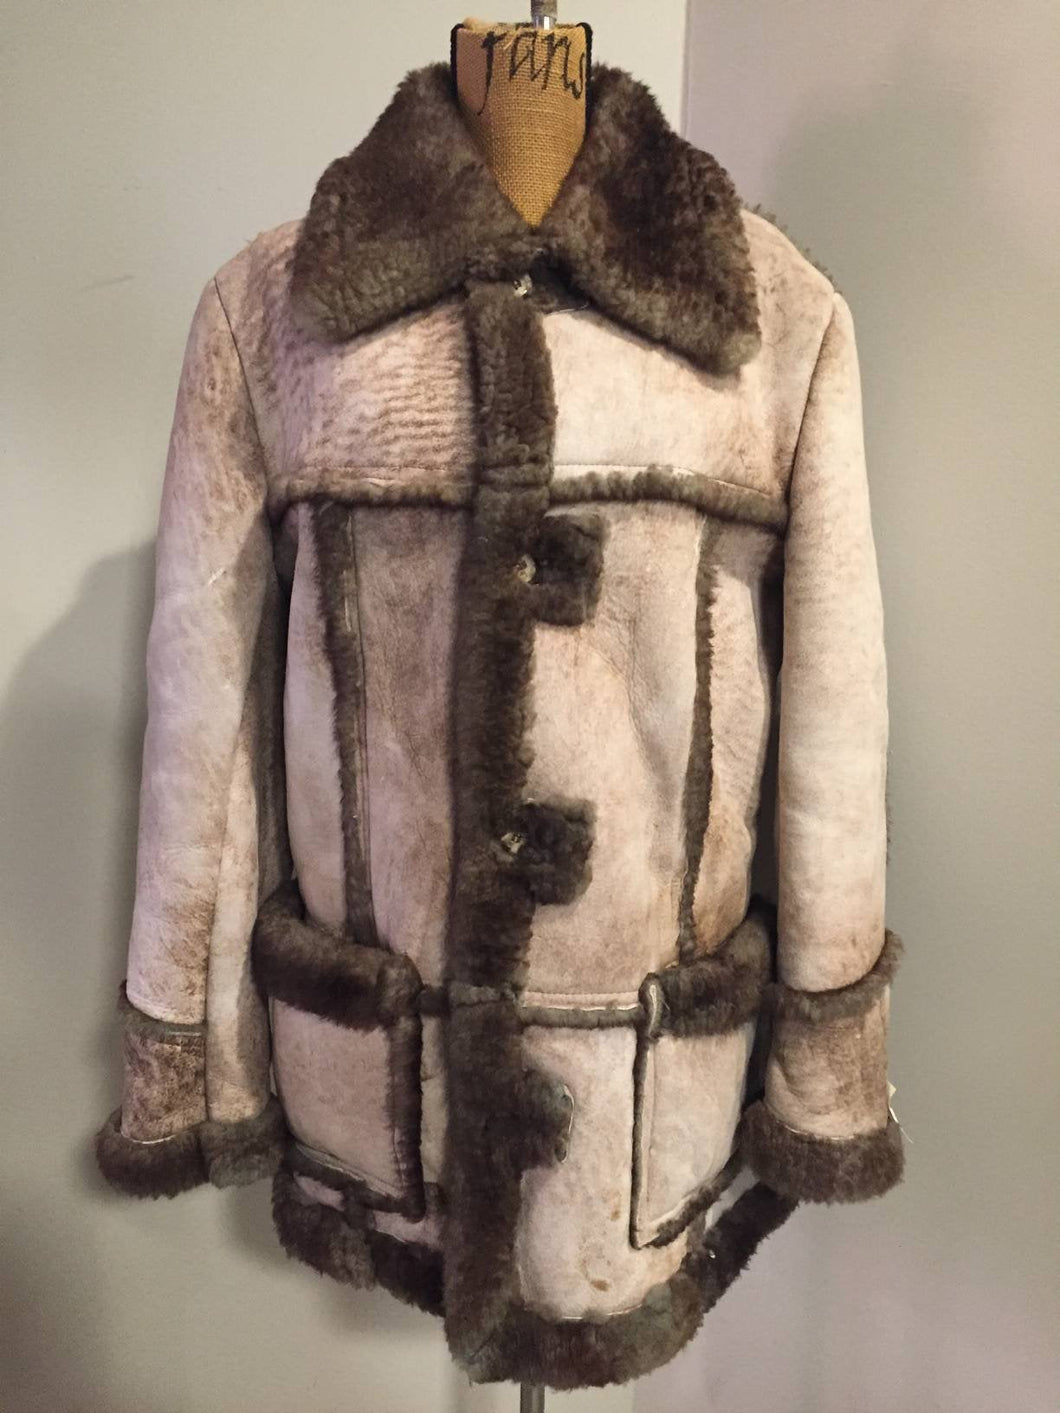 Kingspier Vintage - This robust sheepskin is in remarkable shape. Wool is still as lofty as new. I believe this coat was manufactured in the 60's. Made in Canada.